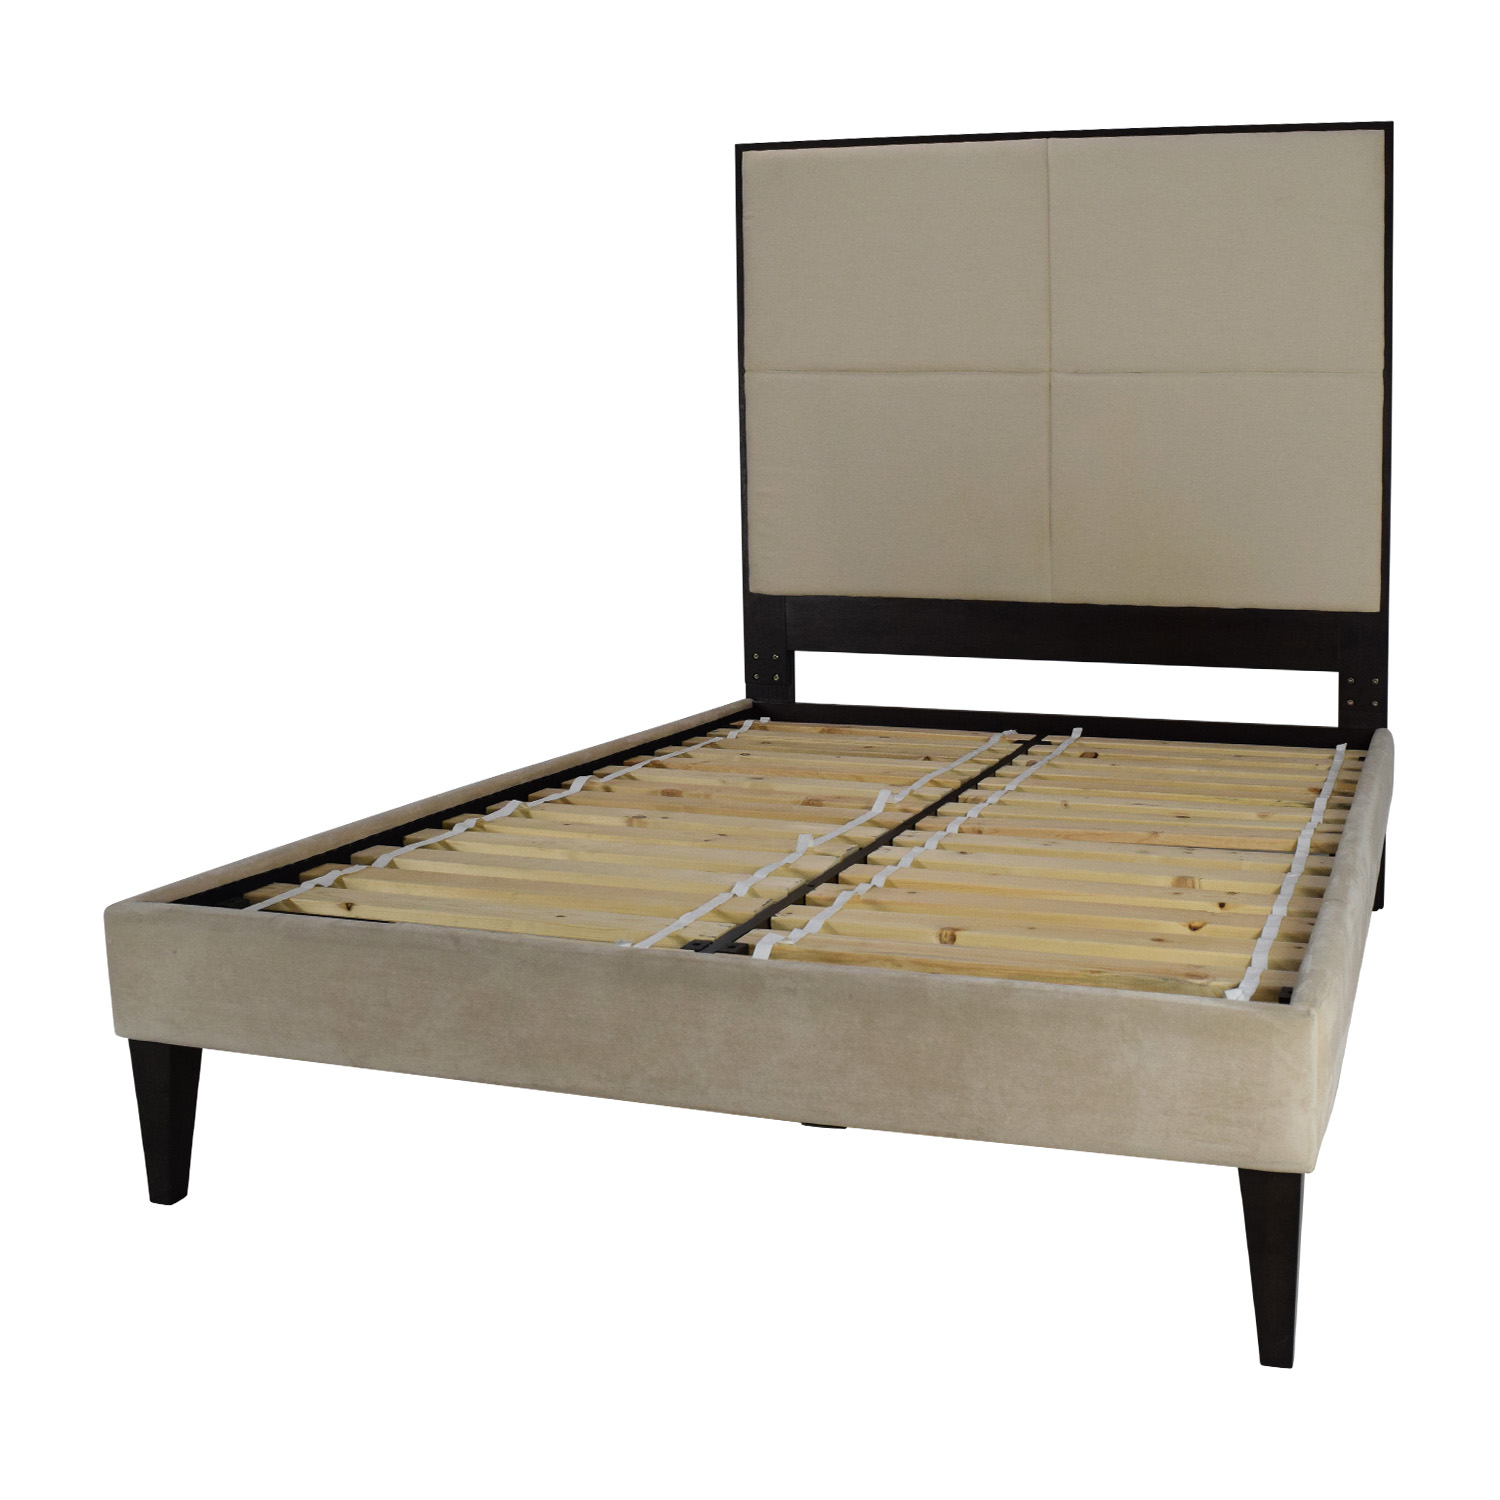 Full size beds crown comfort 8inch fullsize bed frame and for Full size bed frame